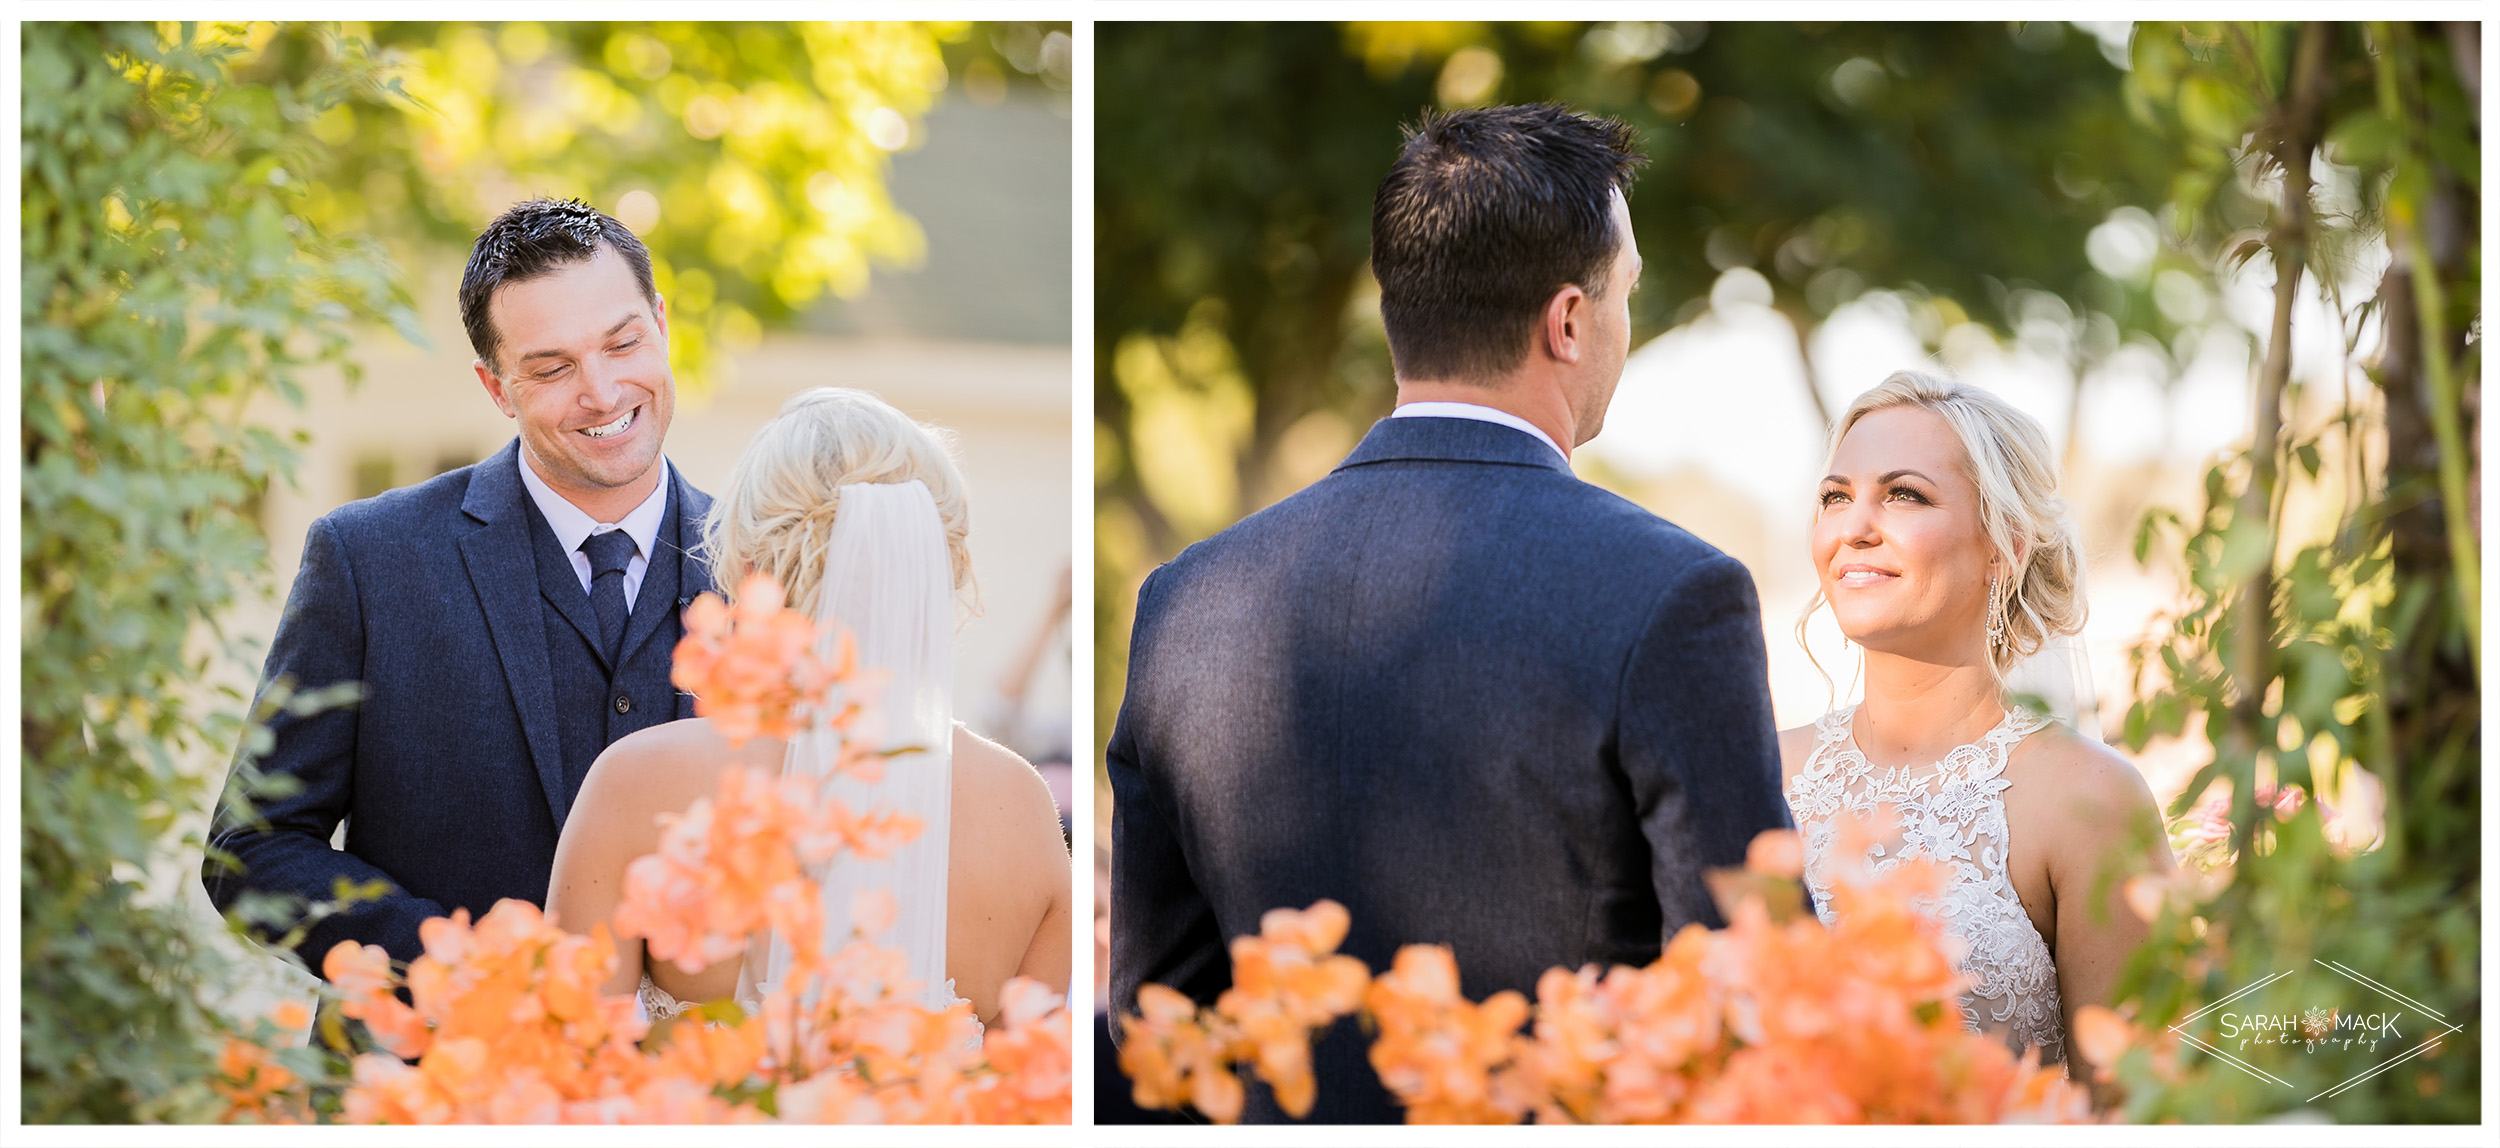 MA-Chandler-Ranch-Paso-Robles-Wedding-Photography-69.jpg